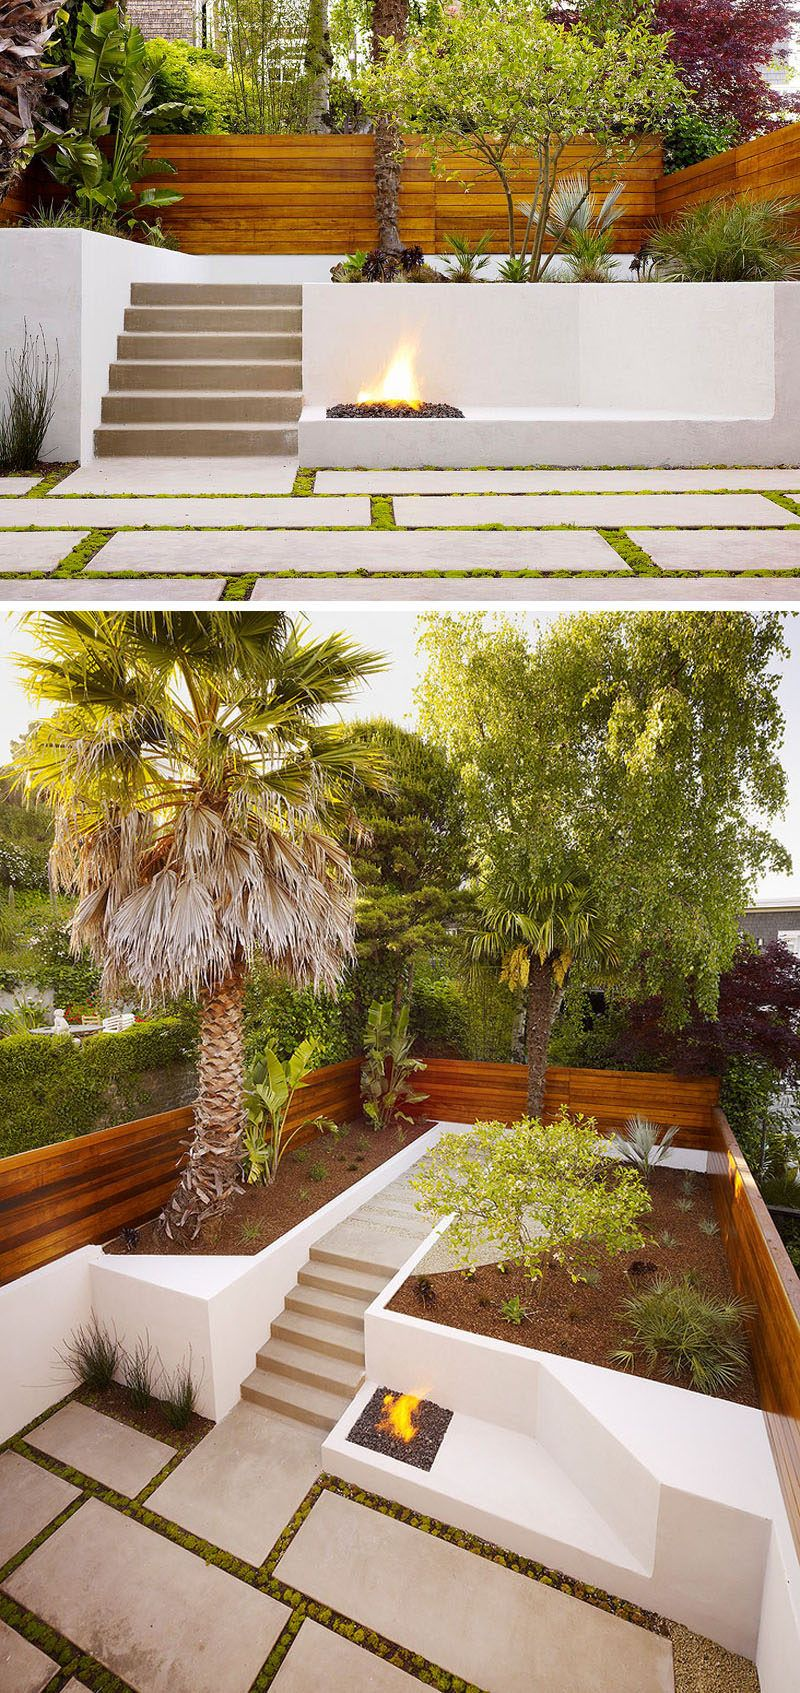 13 Multi Level Backyards To Get You Inspired For A Summer Backyard Makeover This Backyard Has